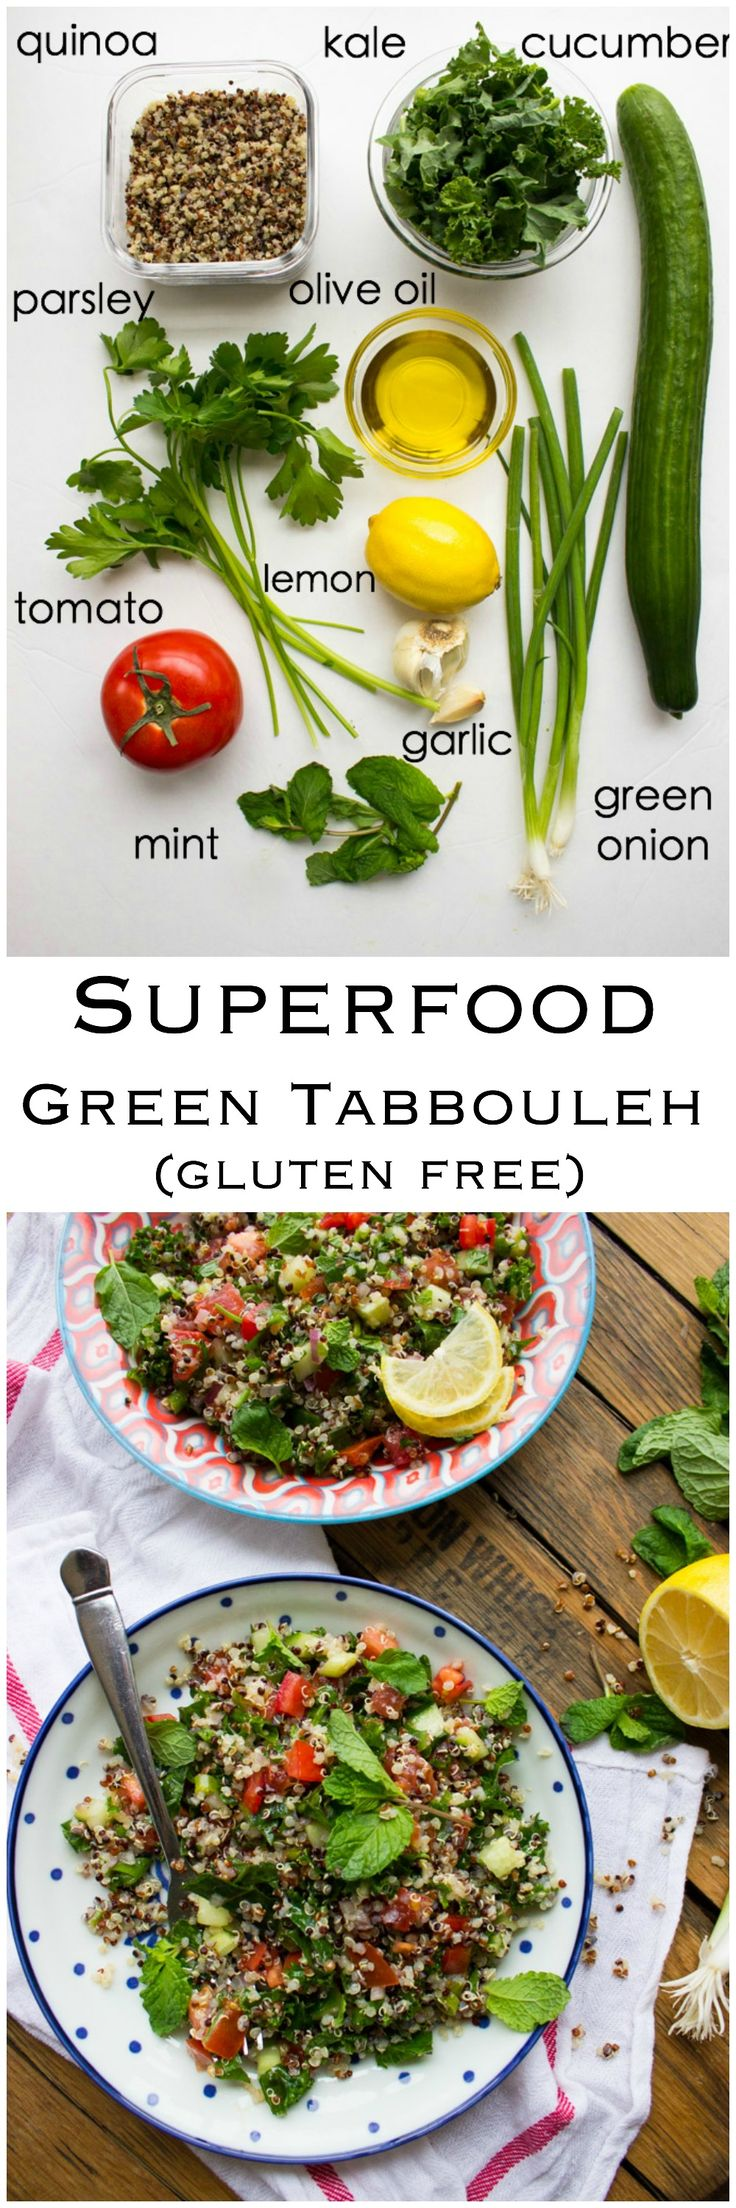 Superfood Green Tabbouleh - this gluten free salad made with superfood quinoa and kale. Takes minutes to make. Top it with chicken for healthy complete meal. SO GOOD! | littlebroken.com @littlebroken